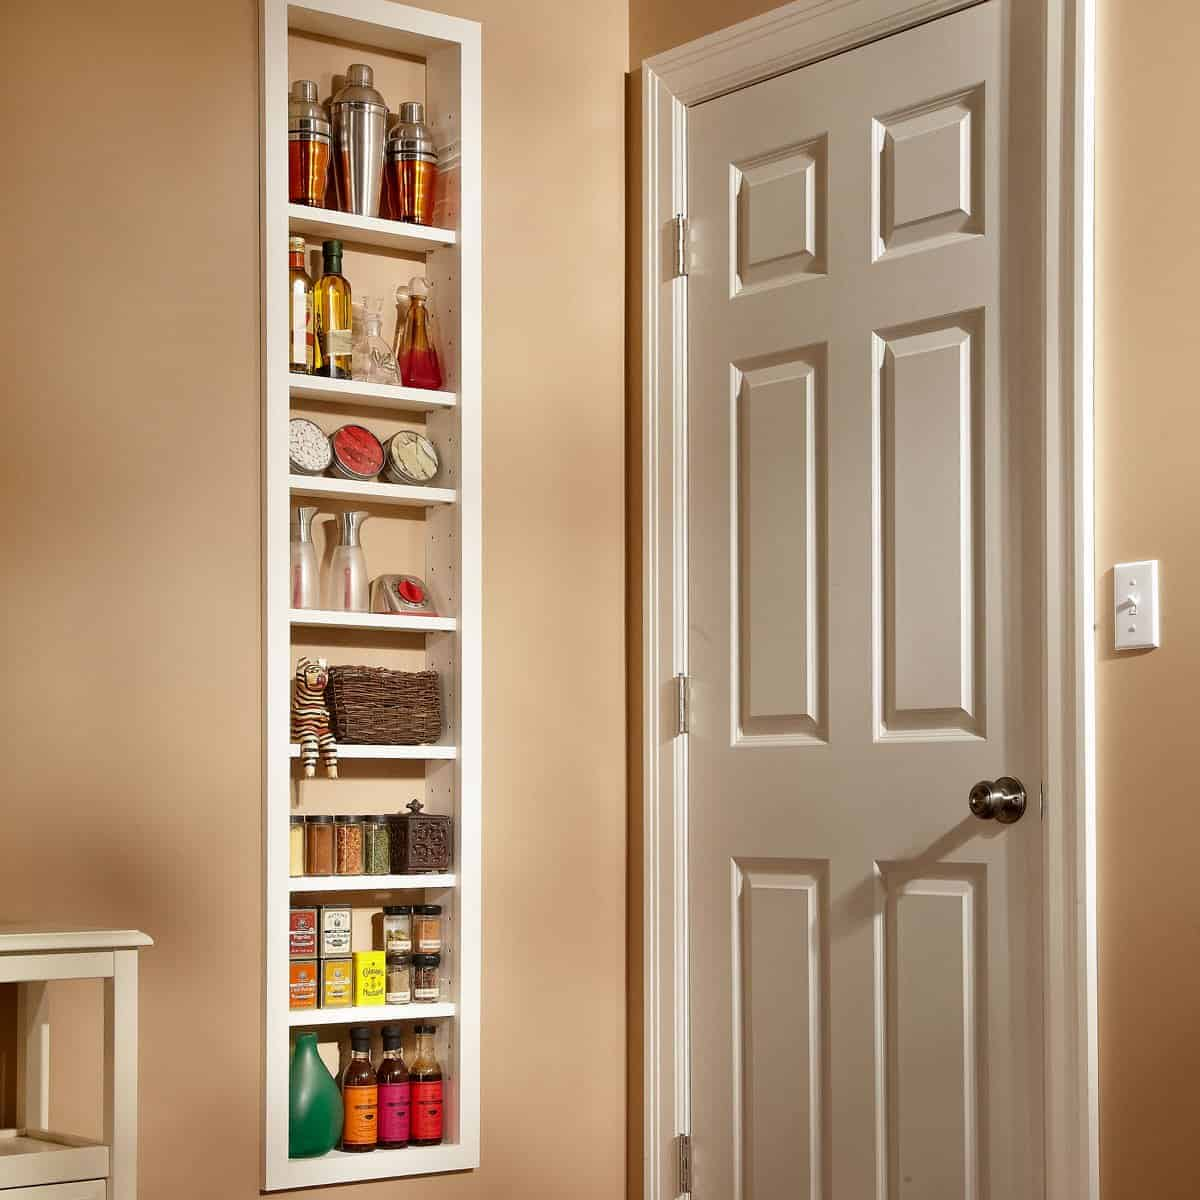 Great storage ideas: cabinet built between the wall studs inside a house